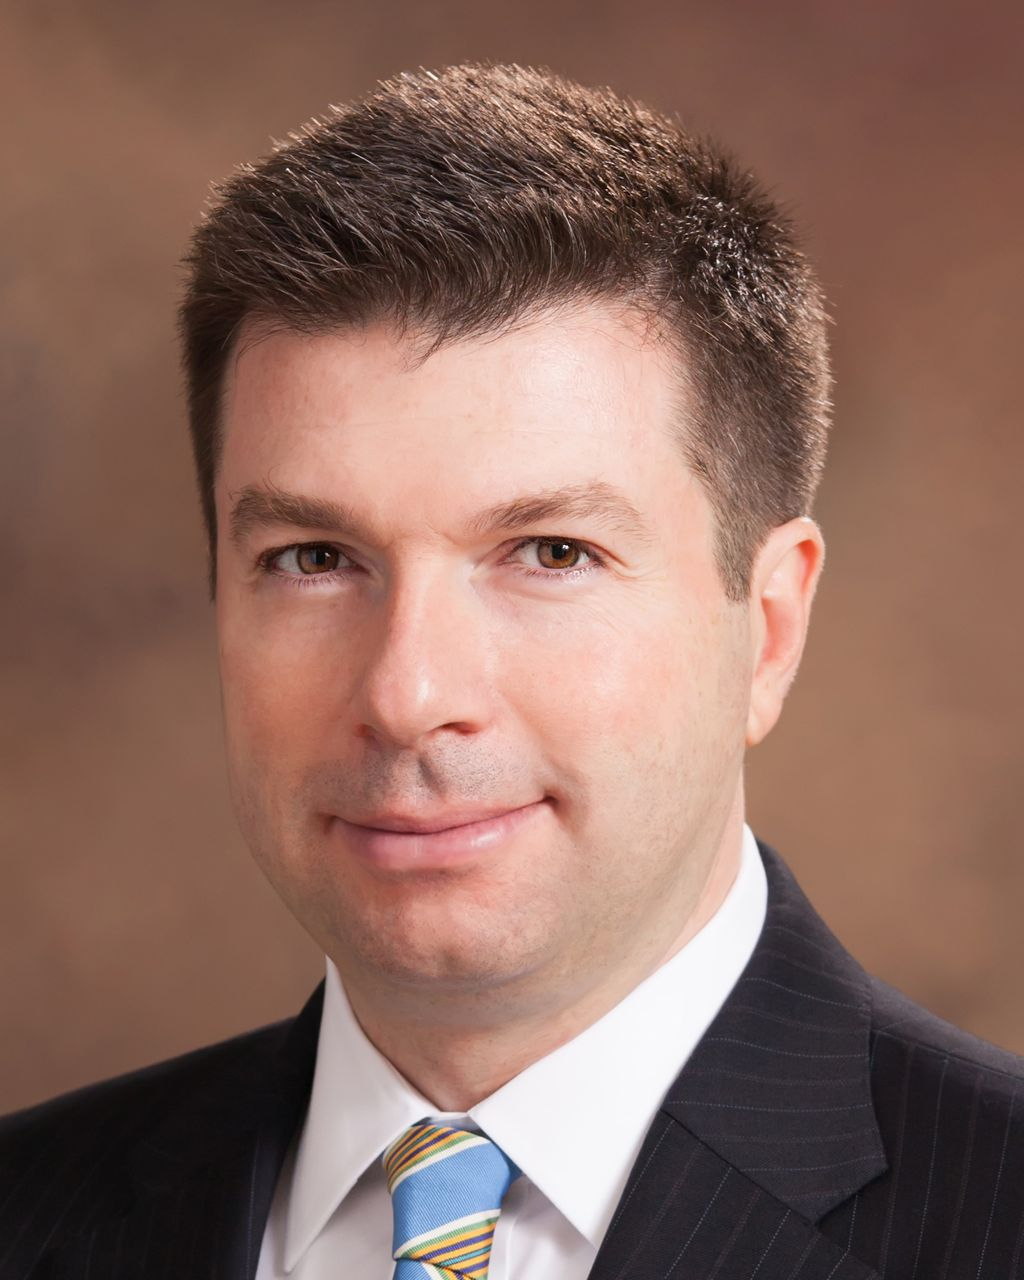 Patrick Cote, financial advisor Burlington MA